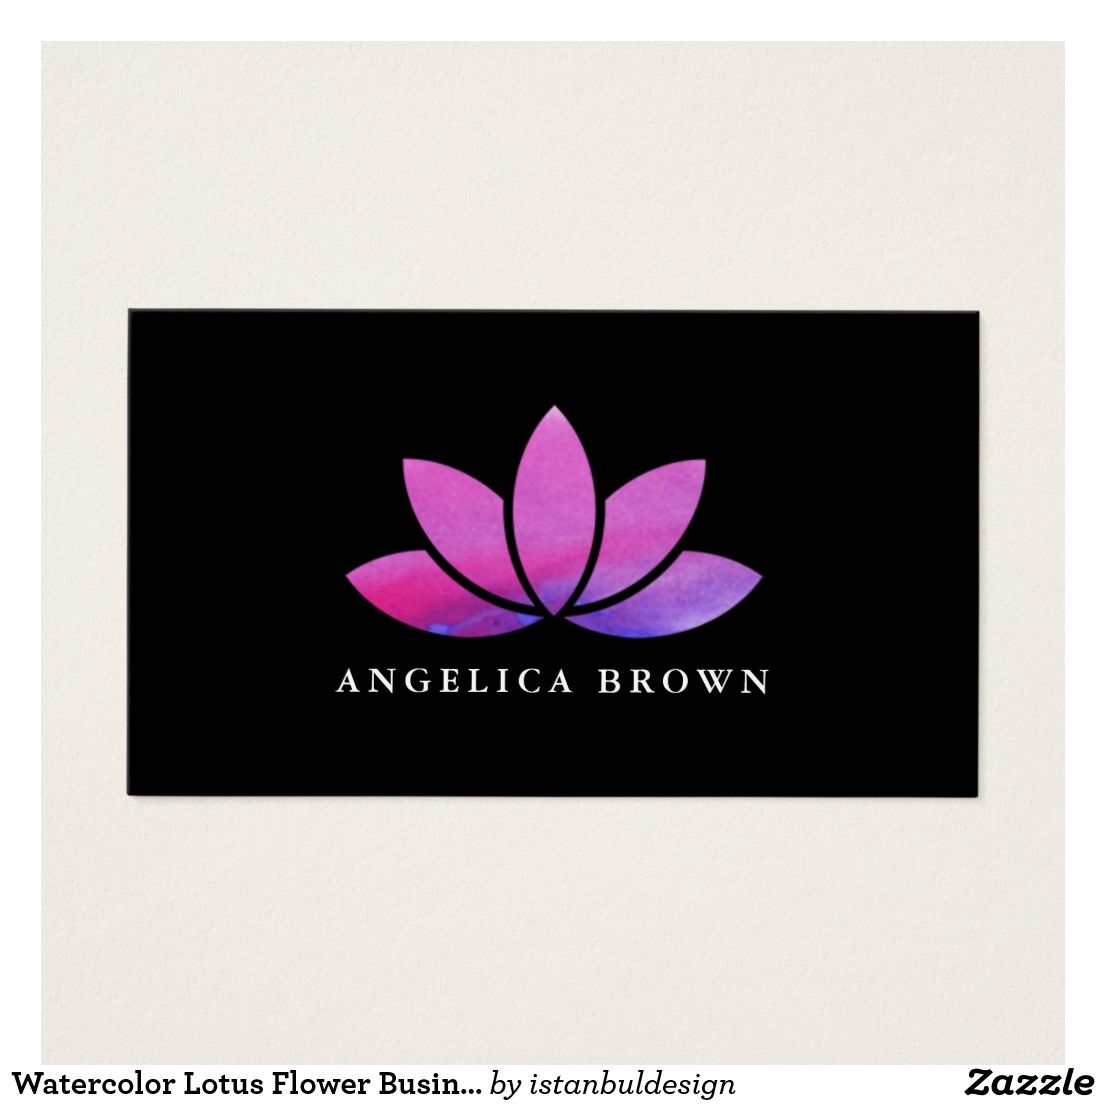 Lotus Flower Business Cards Images - Business Card Template